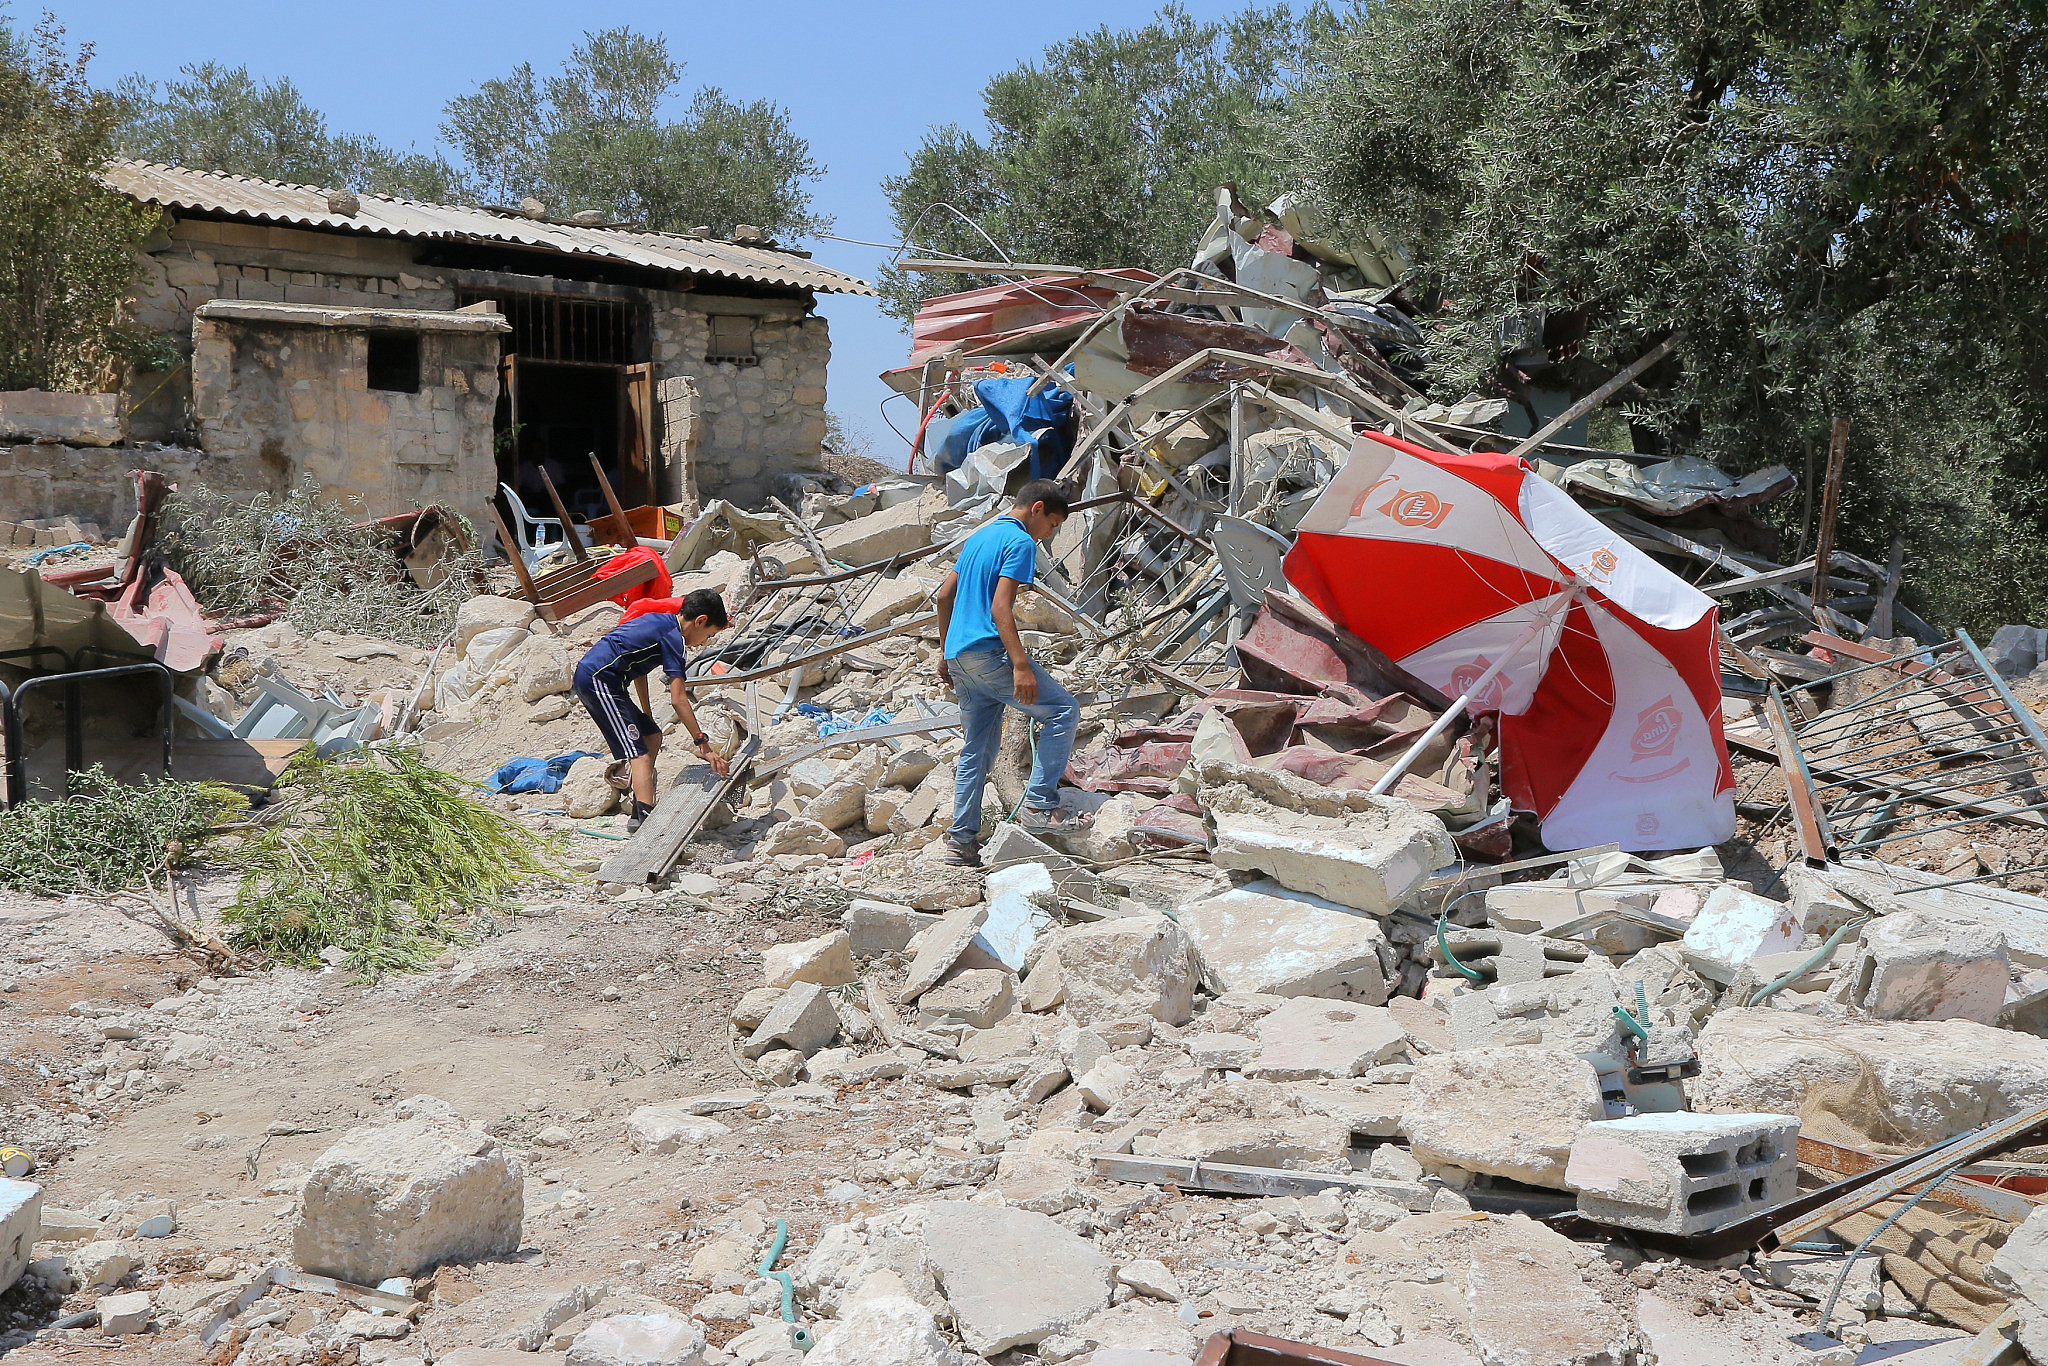 Demolition of Palestinian tourist facility in Sebastia, West Bank, for being built in Area C without Israeli permits, May 27, 2020. (Ahmad al-Bazz/Activestills)